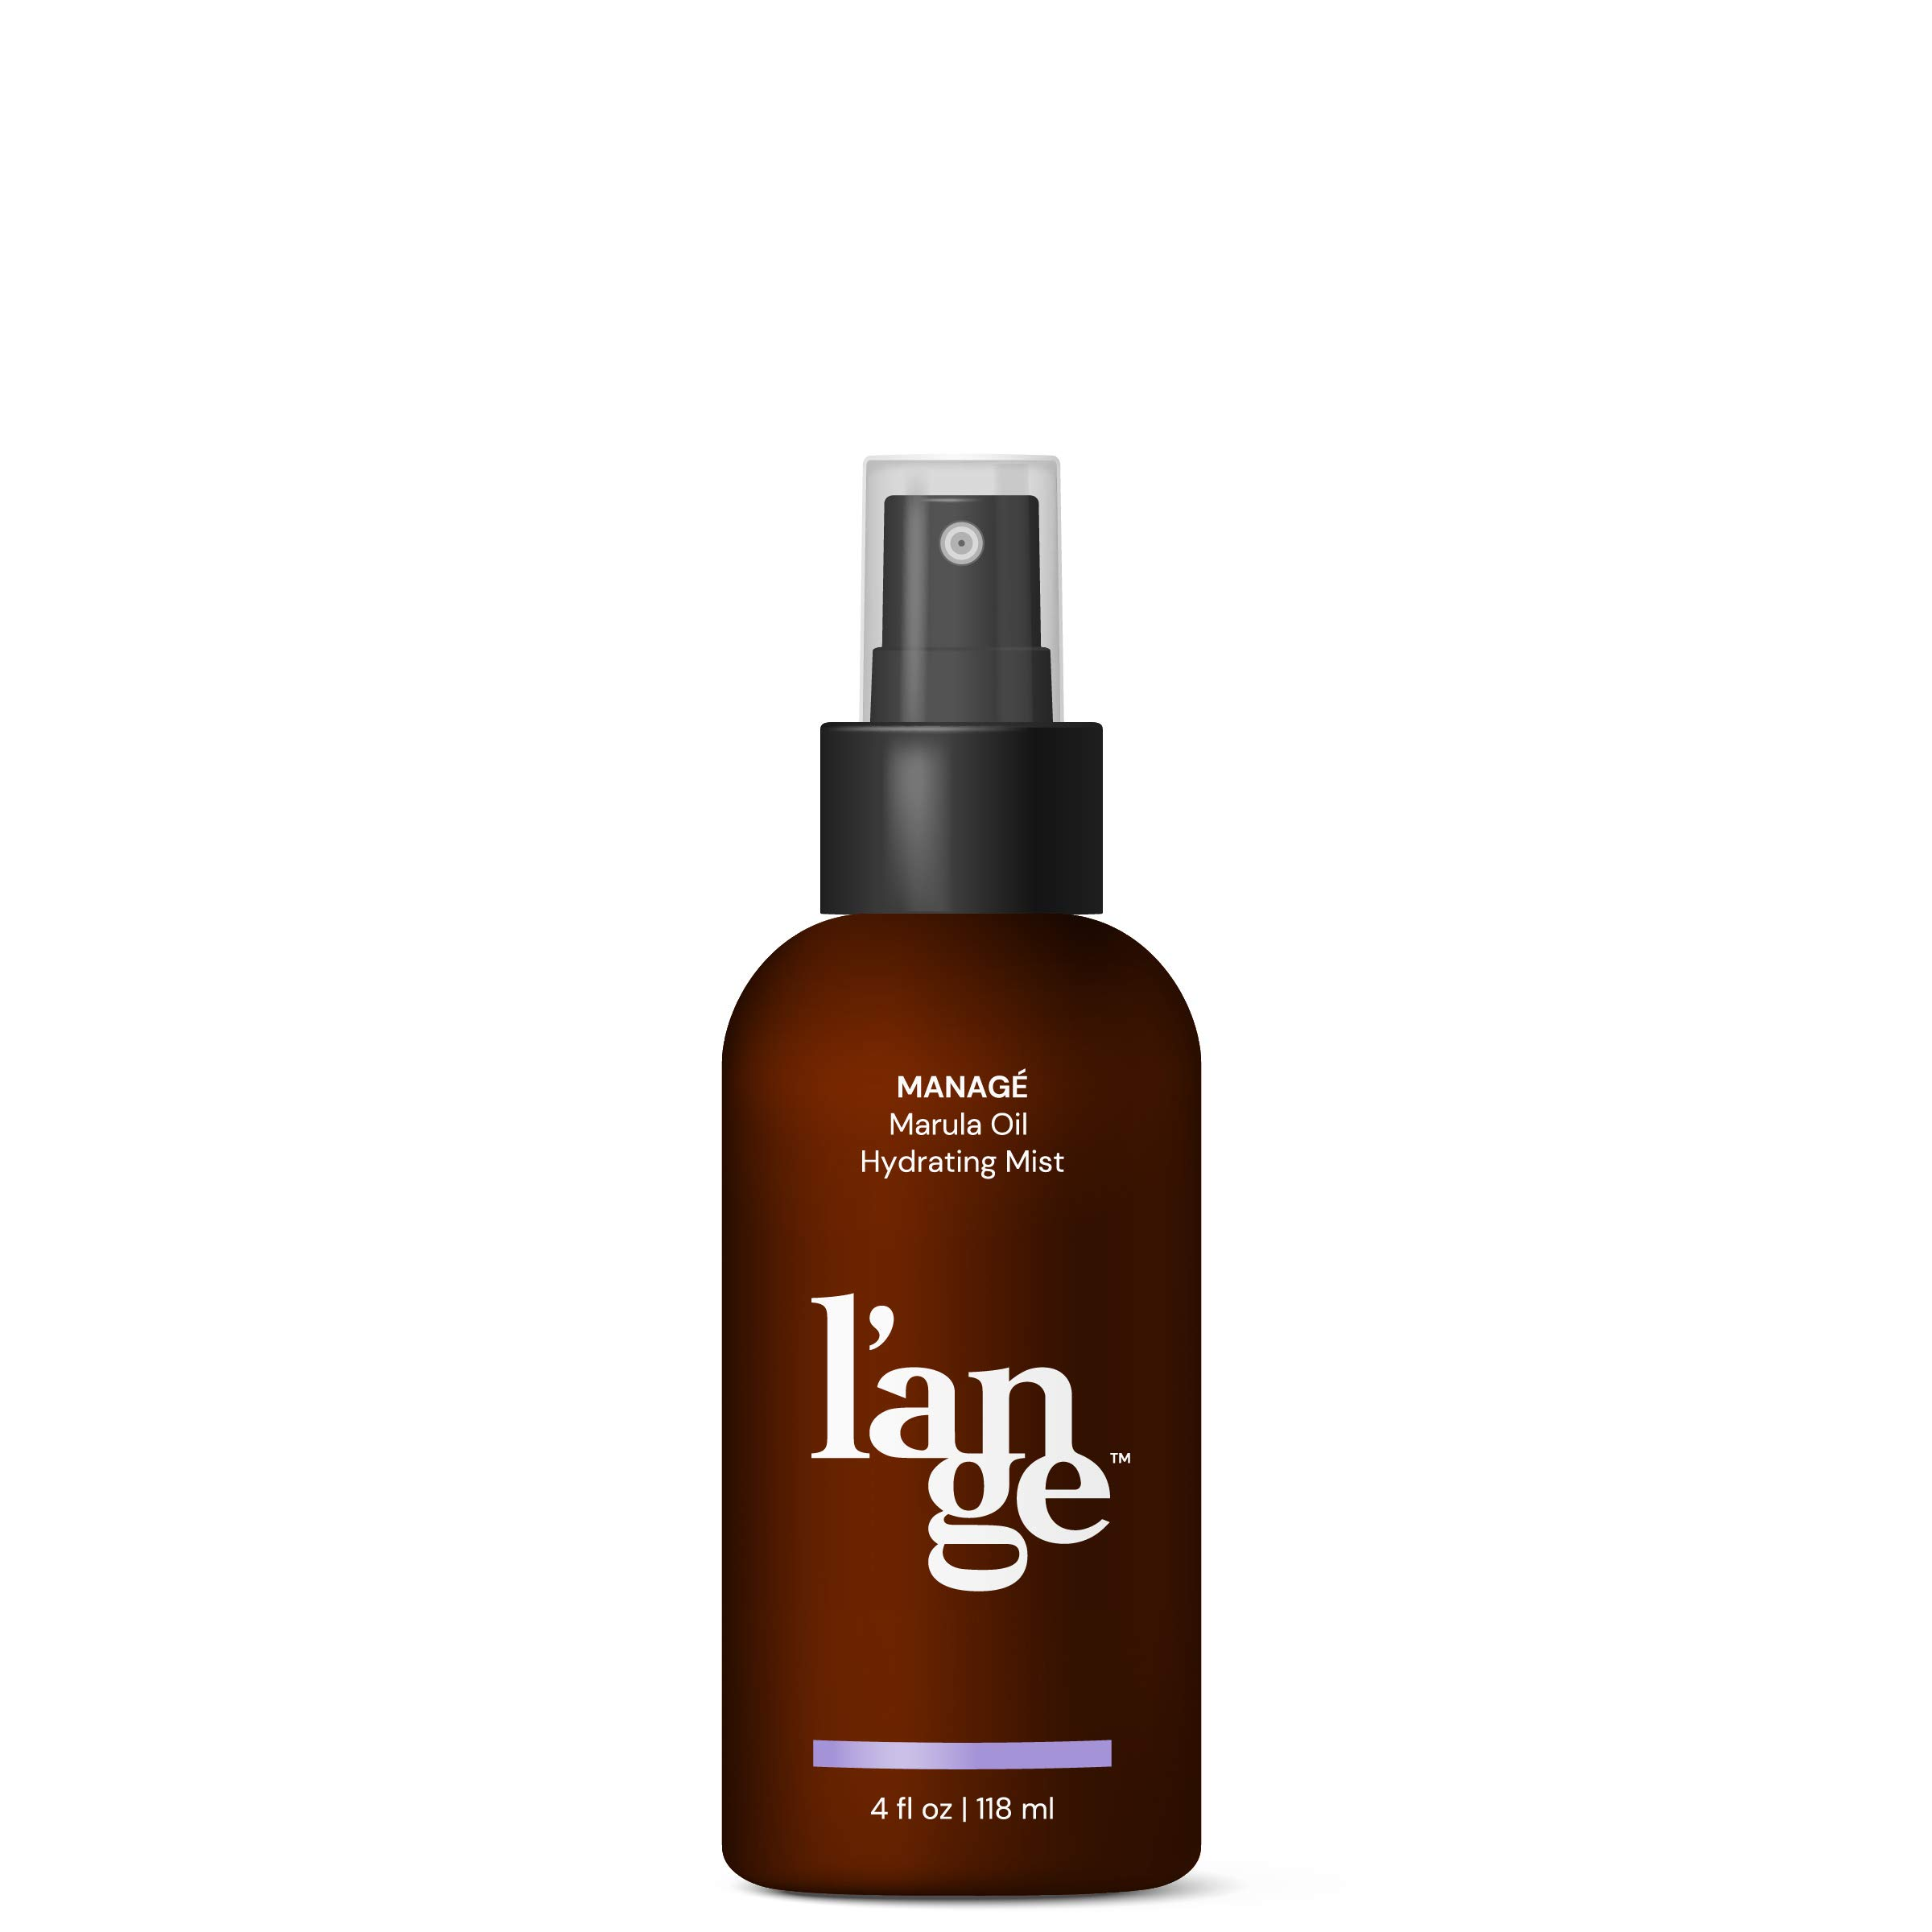 L'ange Hair MANAGÉ Marula Oil Hydrating Mist - Anti-aging Antioxidants & UV Protectant - Anti-frizz Hair Styling - Professional Salon Grade - Deep Moisturizing & Nourishing Formula - 4 Fl Oz